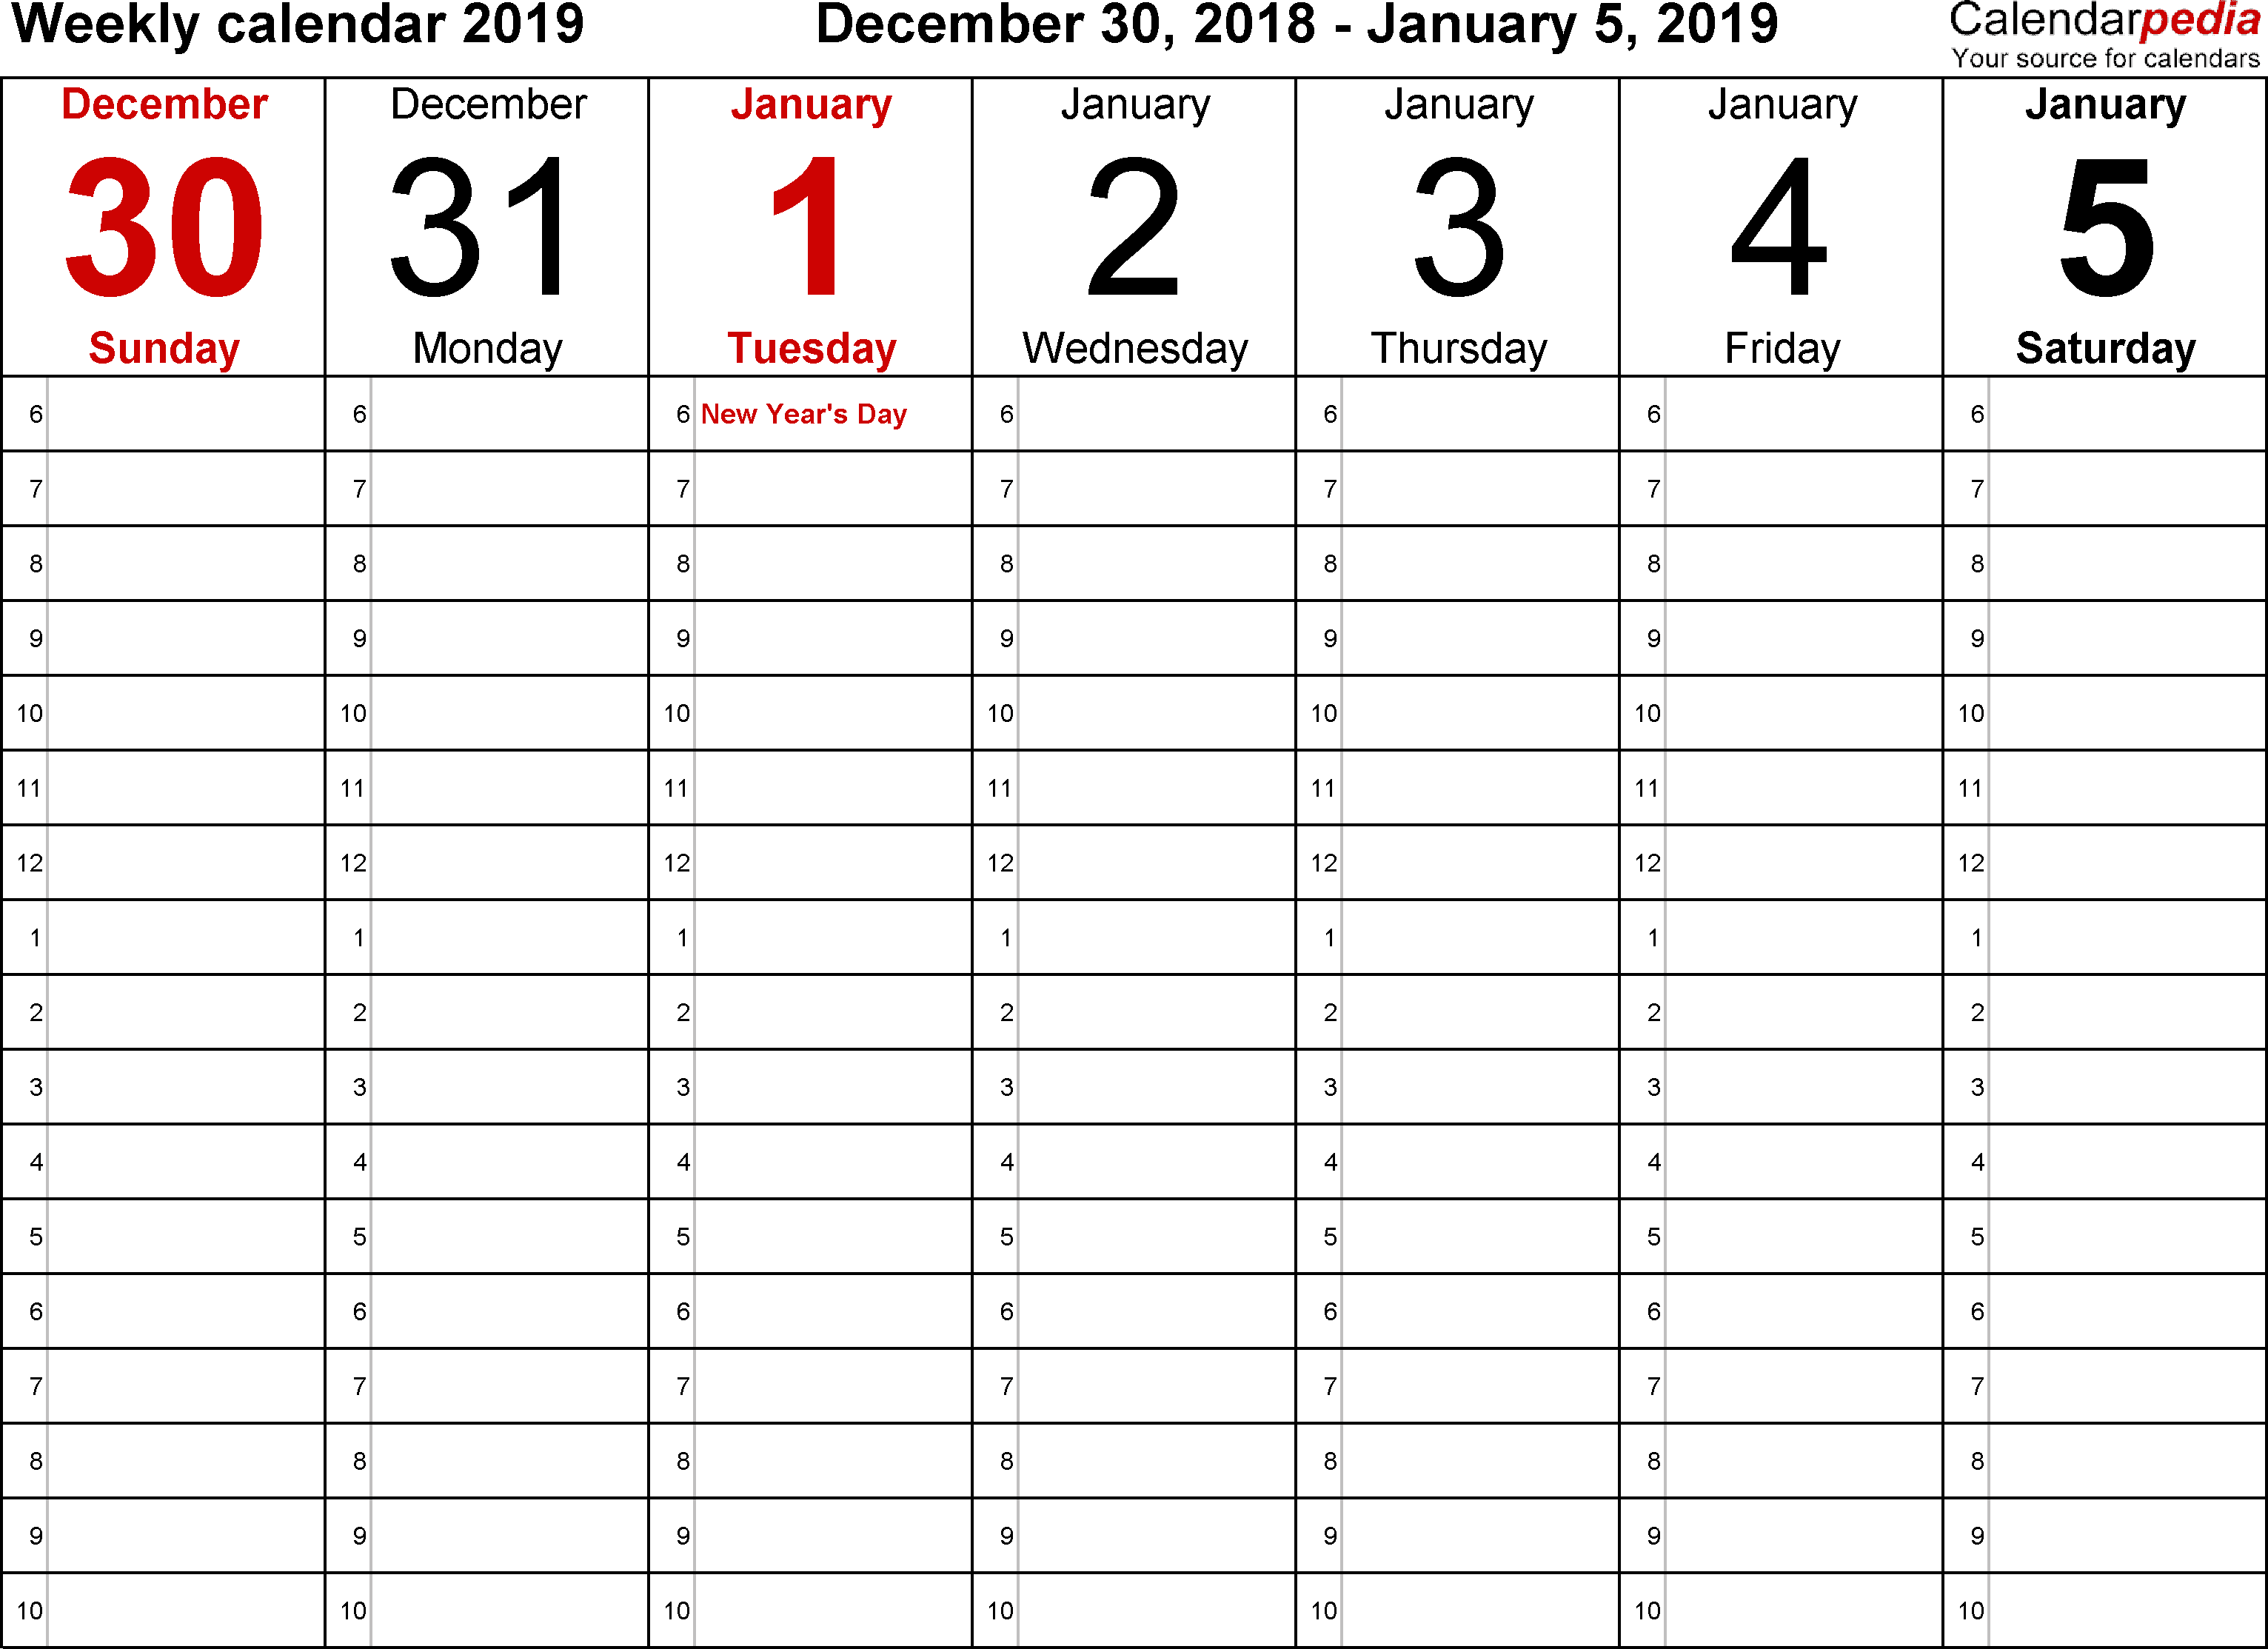 Weekly calendar 2019 for Excel - 12 free printable templates